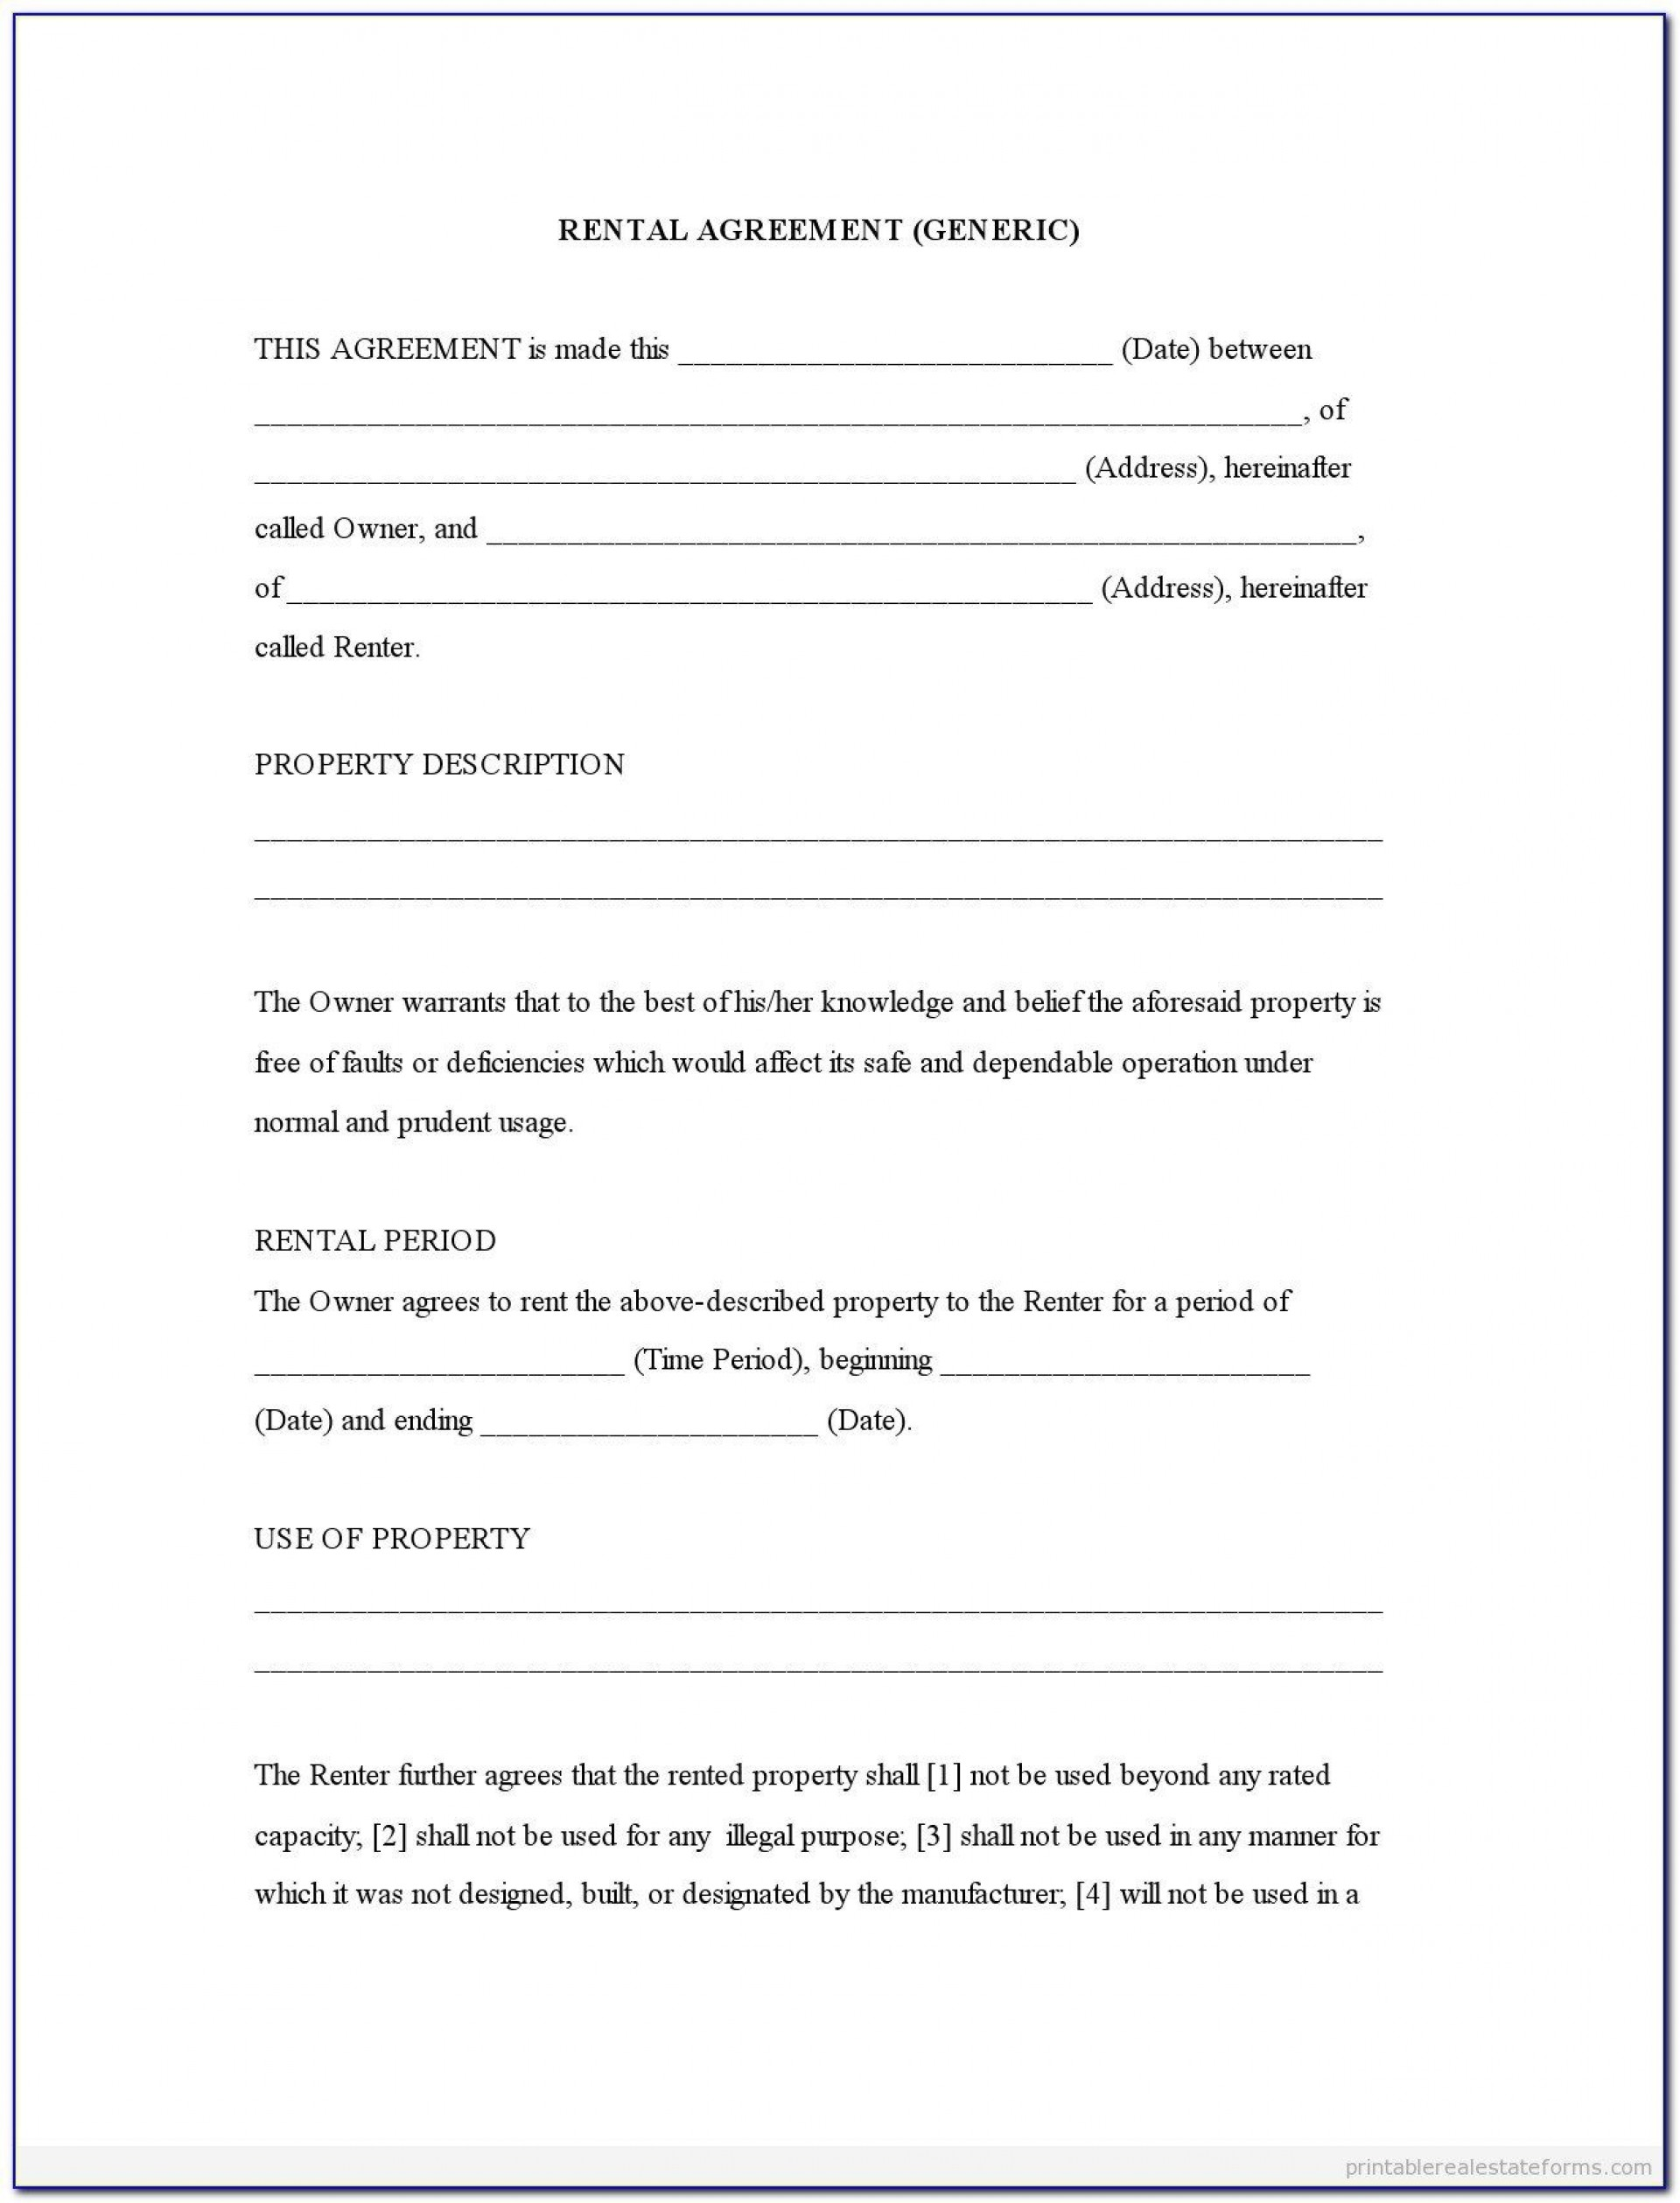 004 Exceptional Rental Agreement Template Word Free Picture  Tenancy Shorthold1920